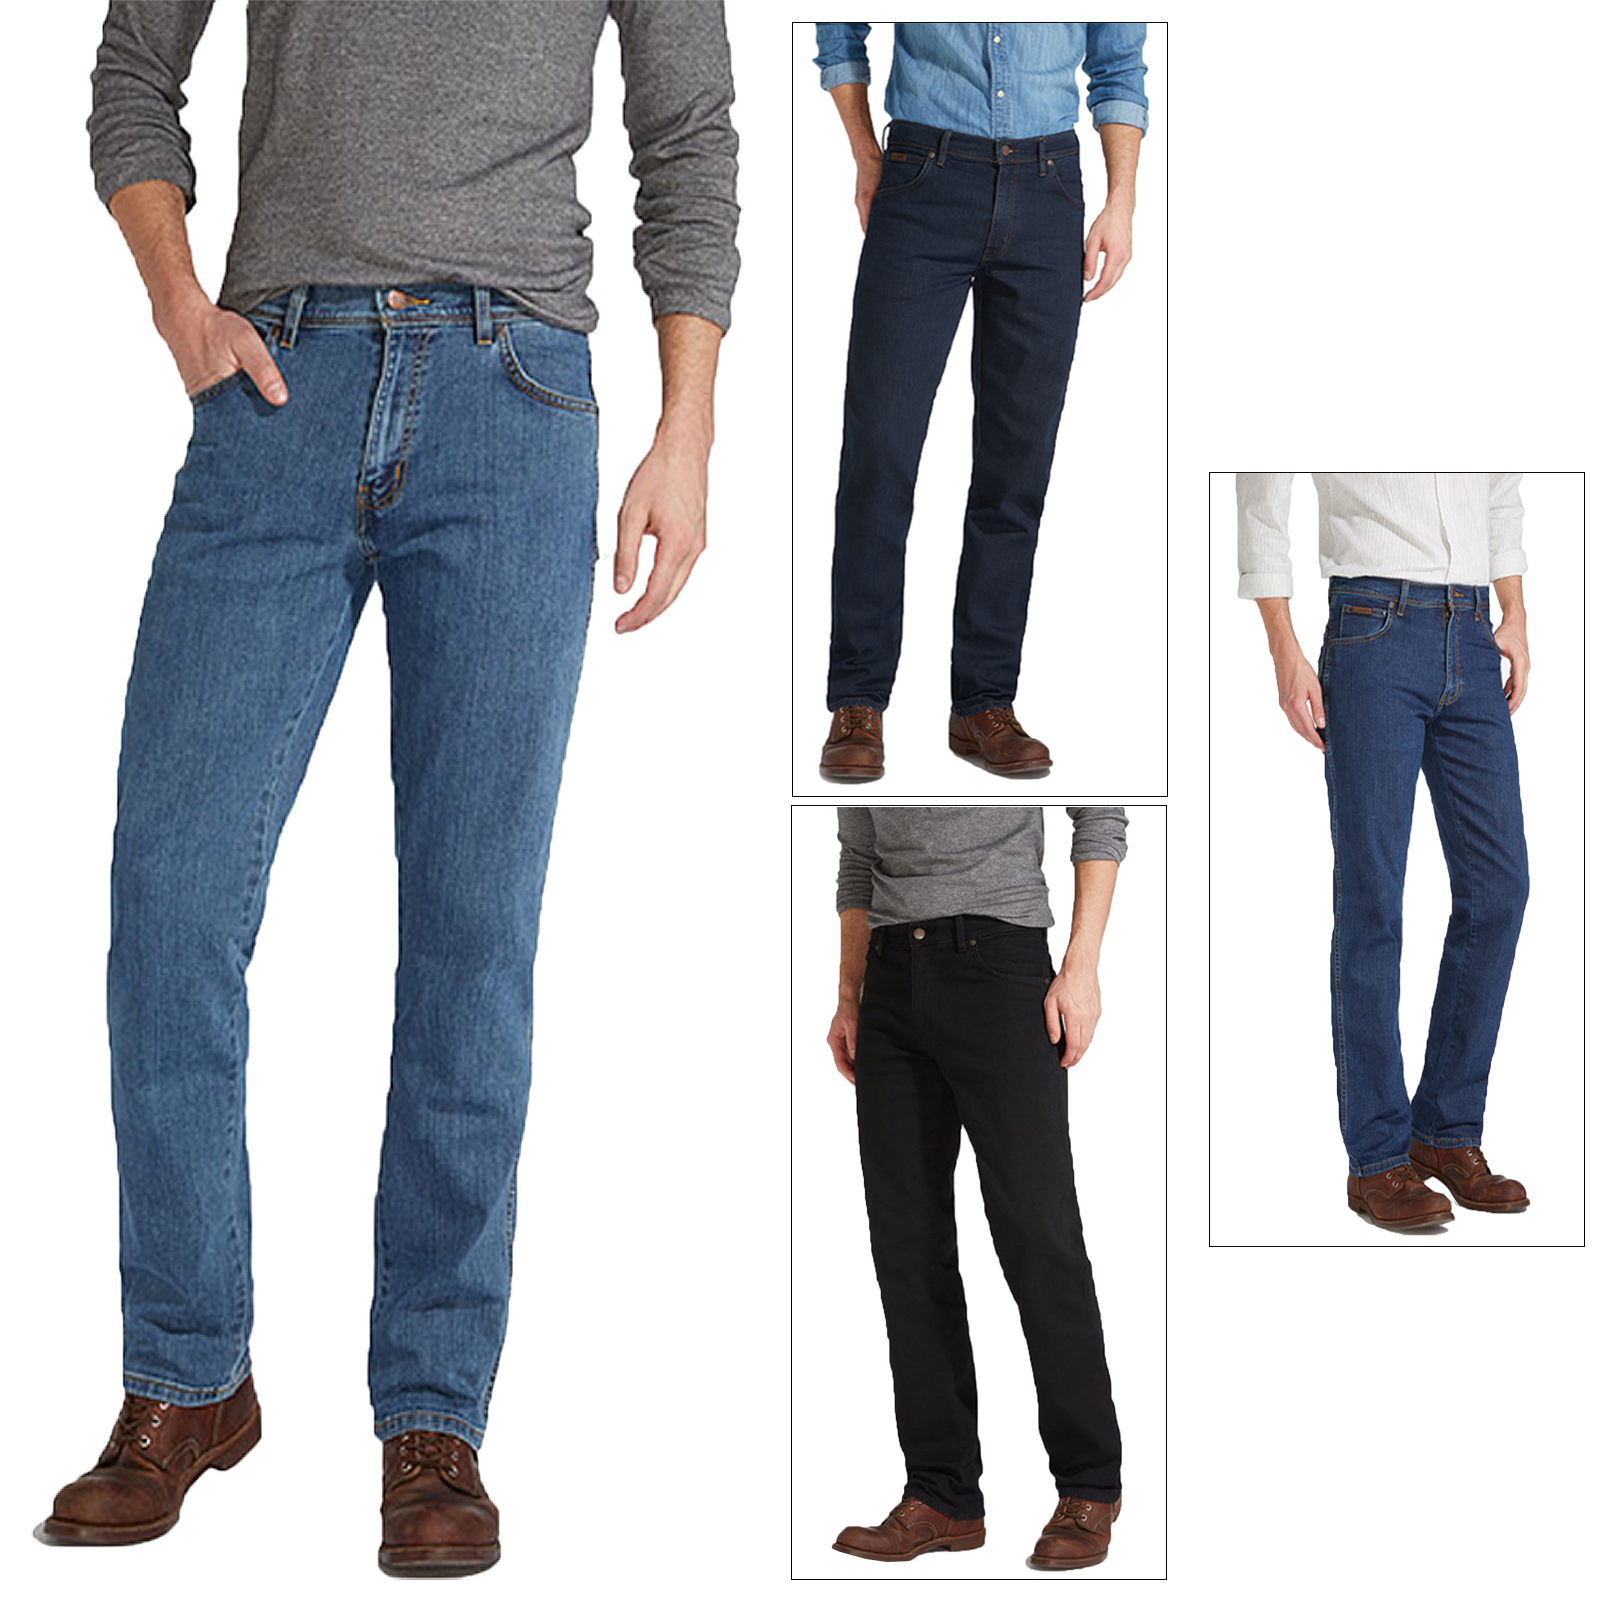 Wrangler Mens Texas Iconic New Designer Stretch Fit Jeans Original Western Pants Ebay